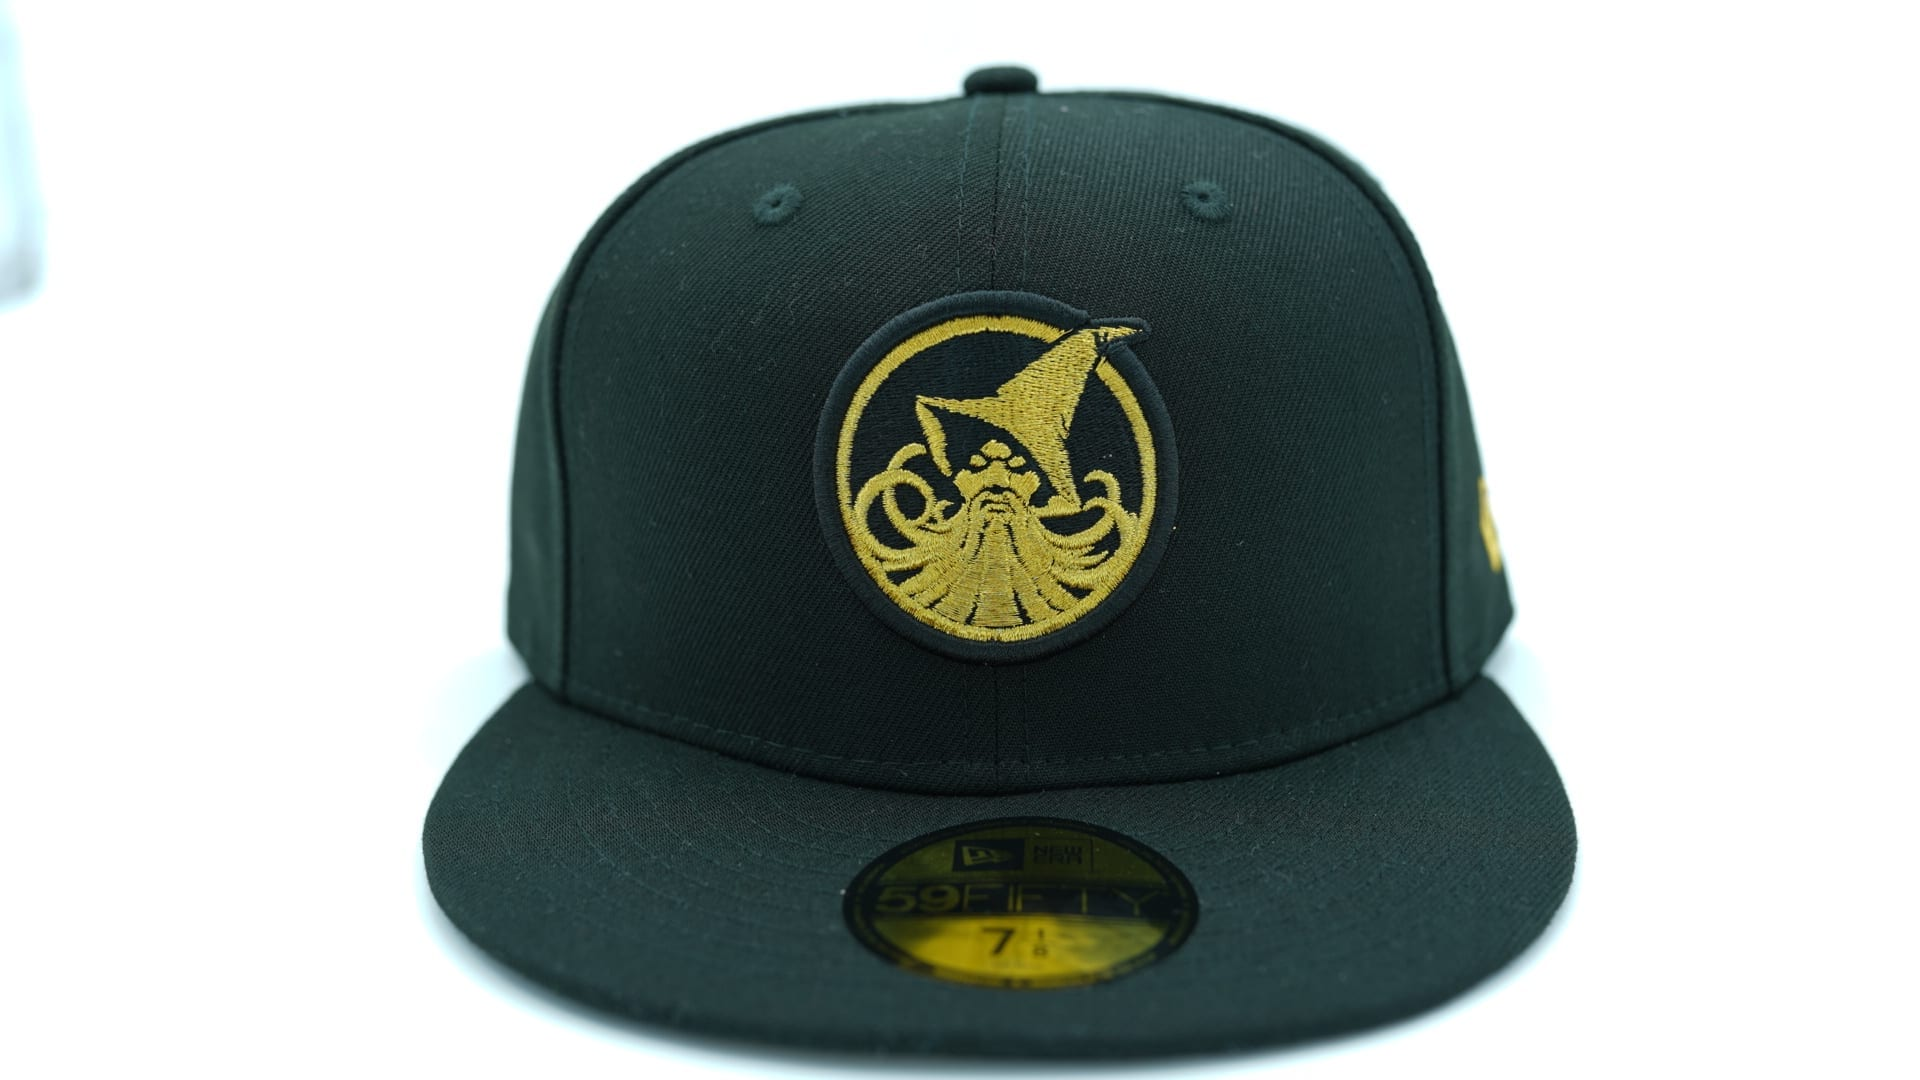 Benjamin Franklin Pitched Cap Black Gold  59Fifty Fitted Cap by NEW ERA